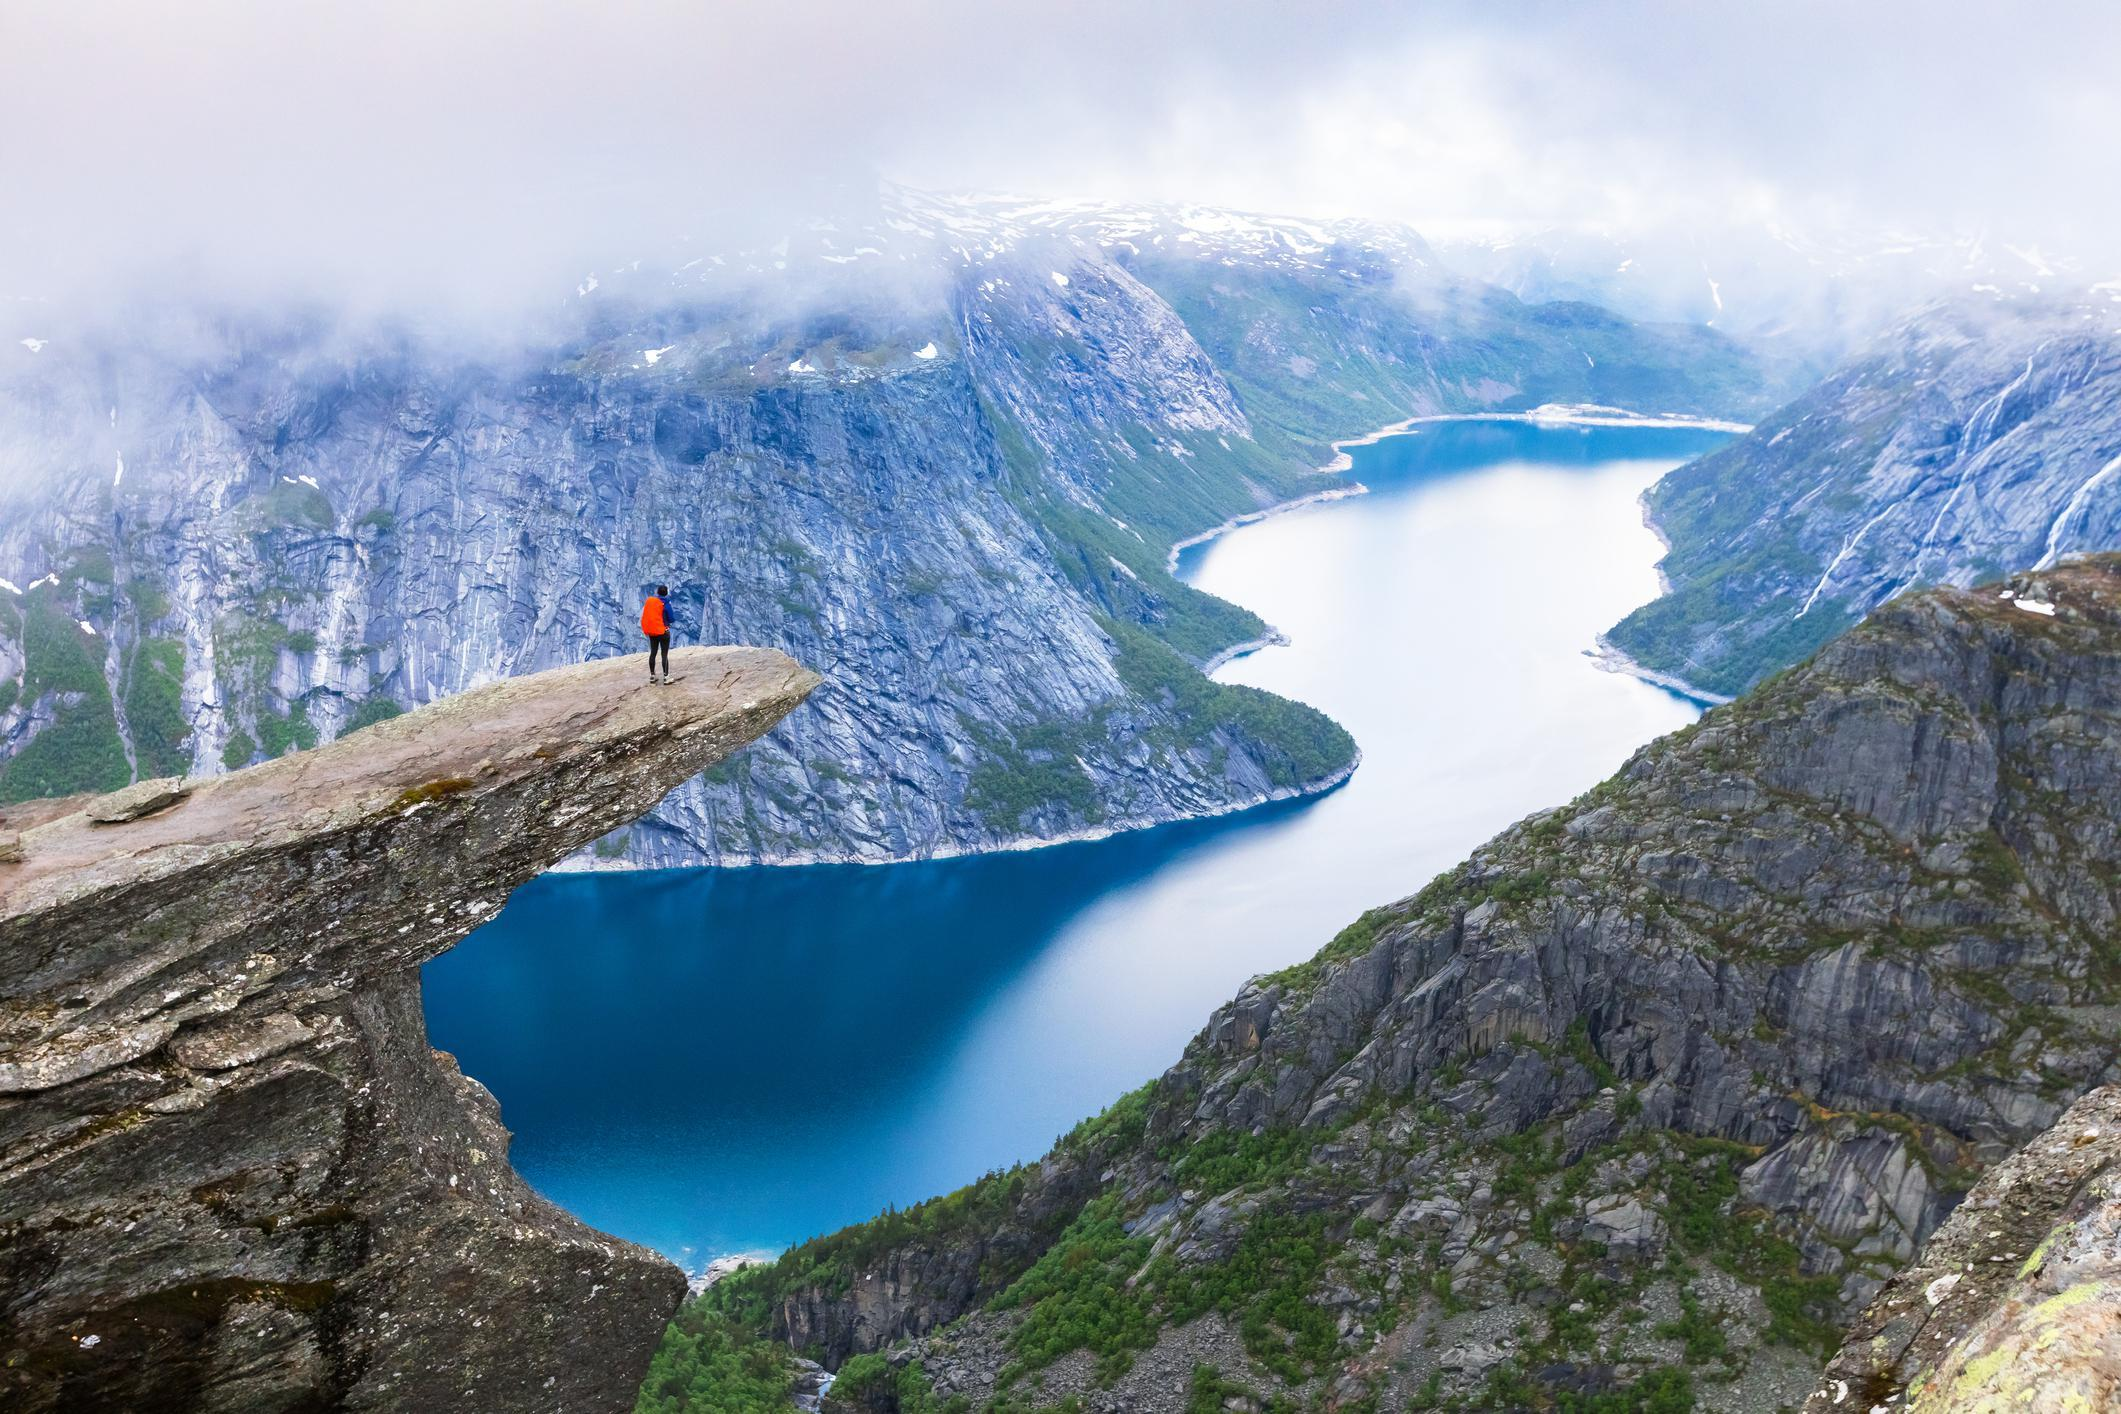 19 of the World's Most Beautiful Countries - How Many Have You Visited?